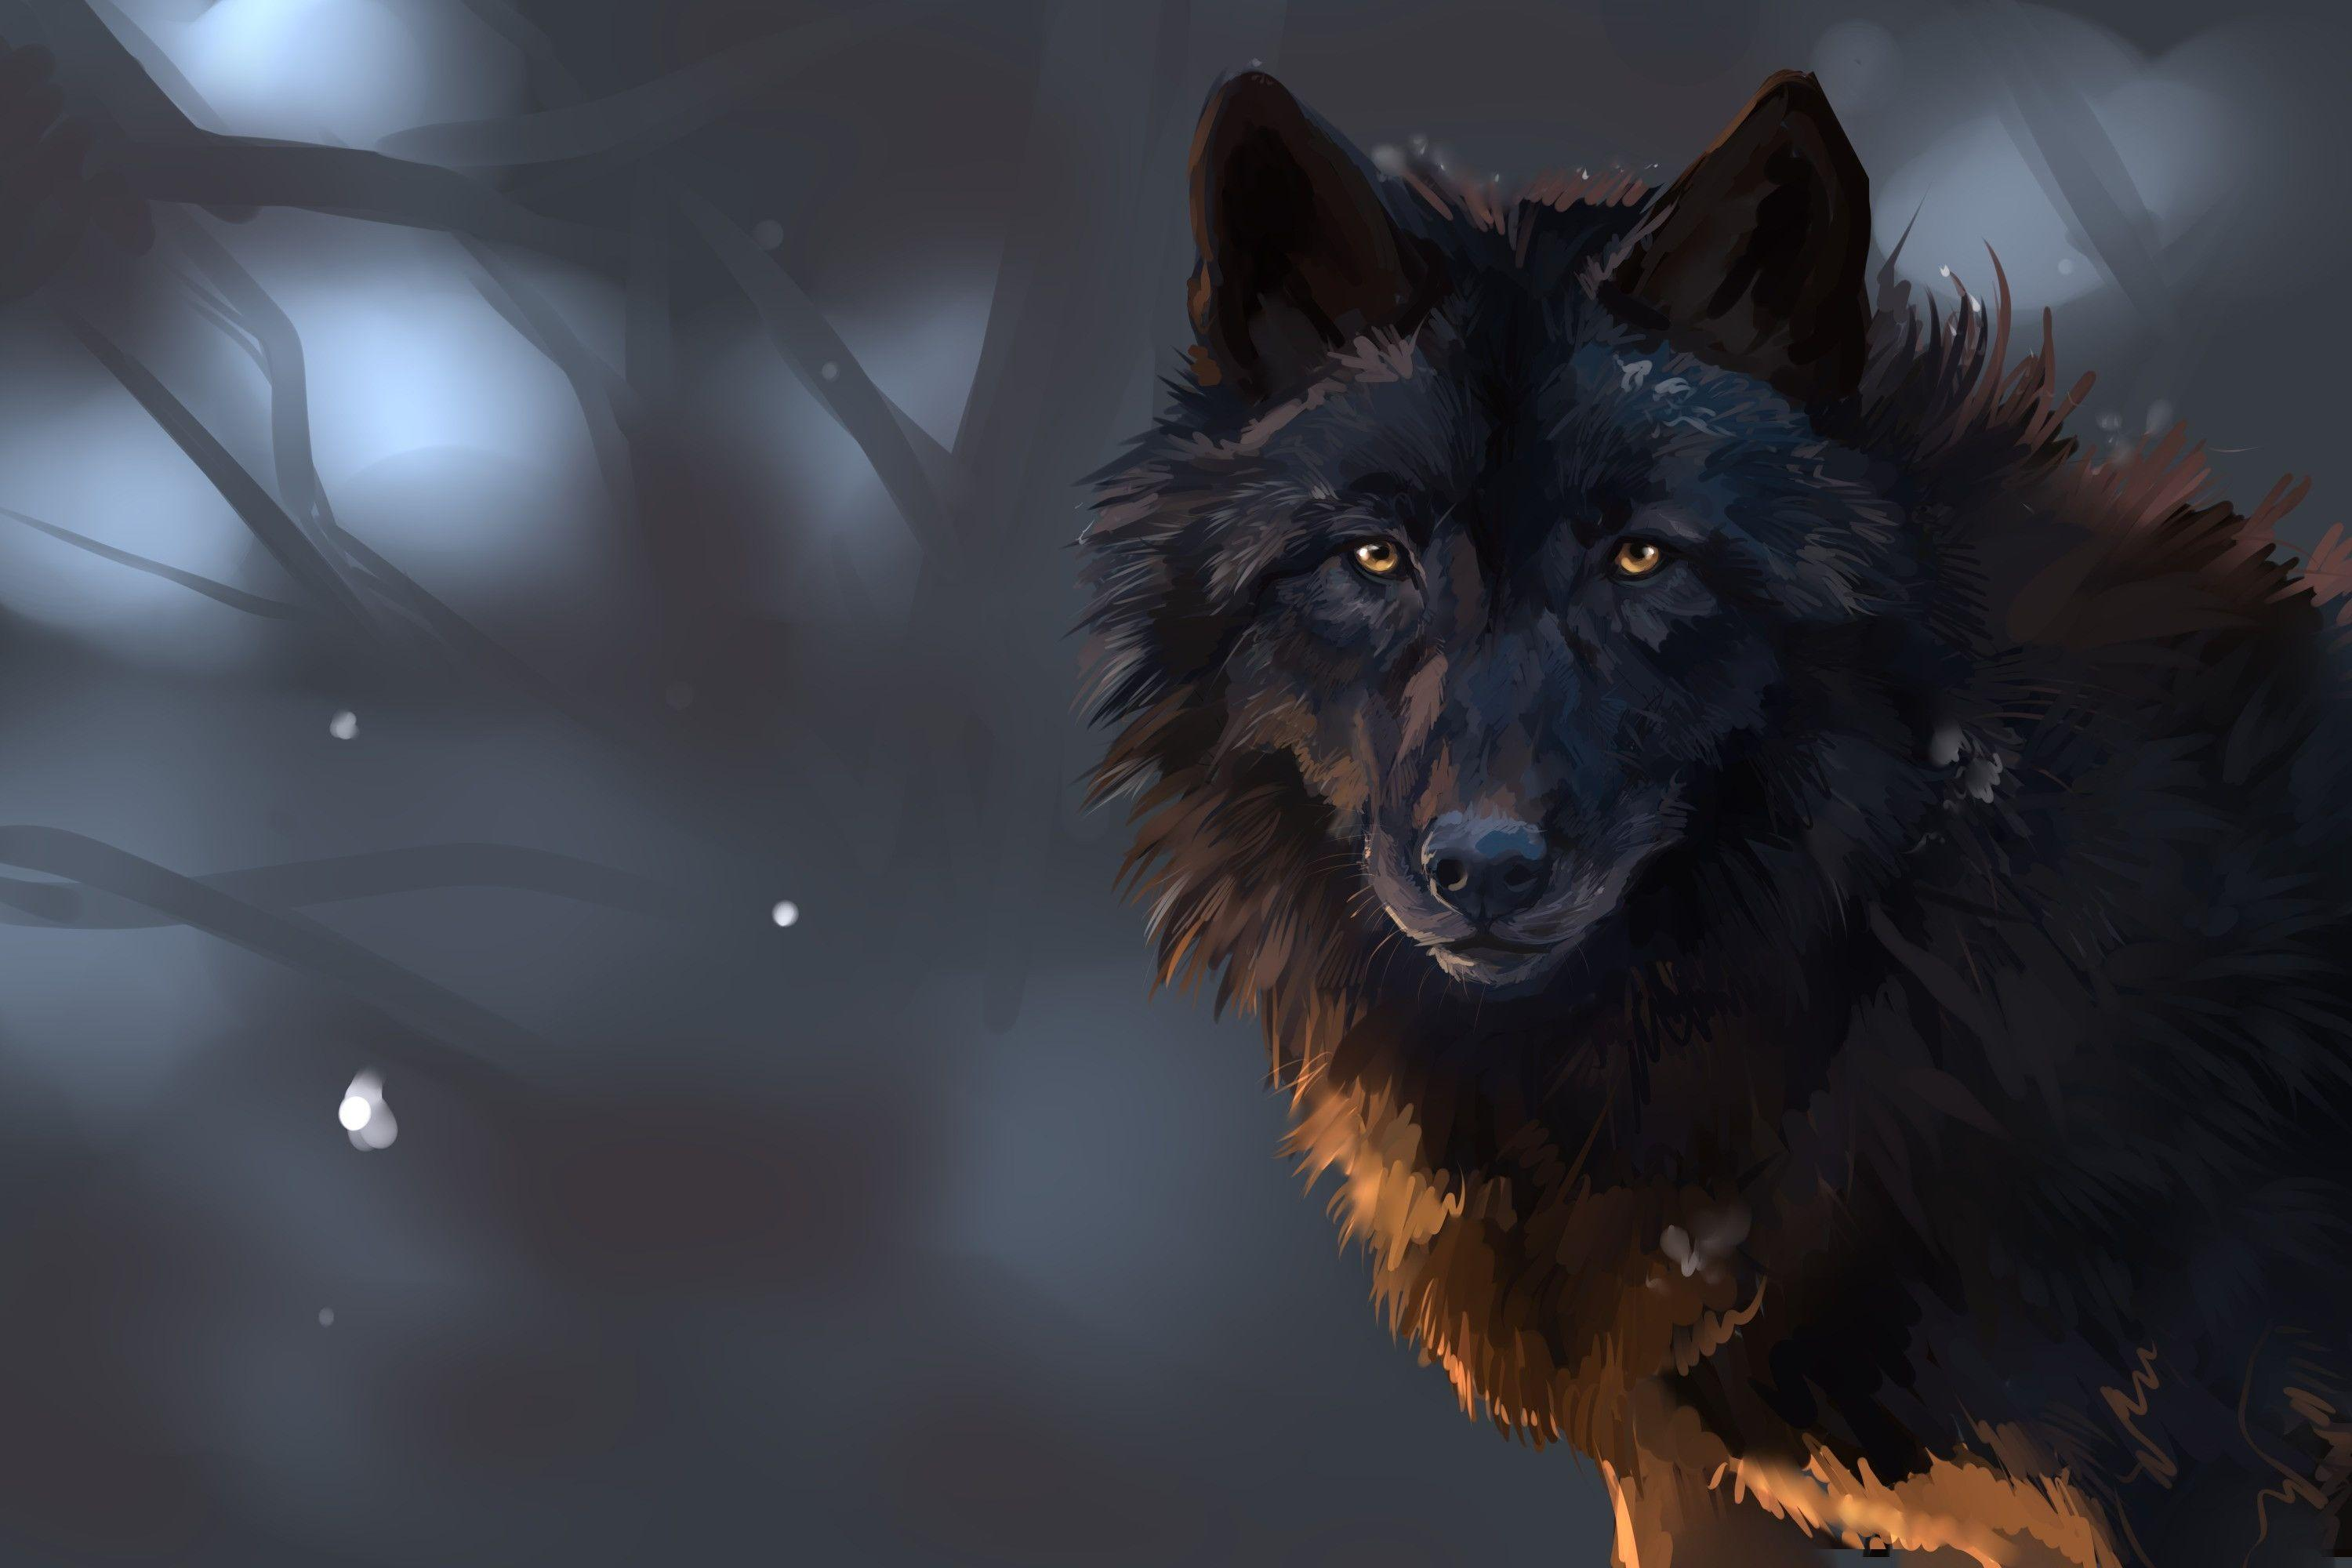 Dark Wolf Wallpapers - Top Free Dark